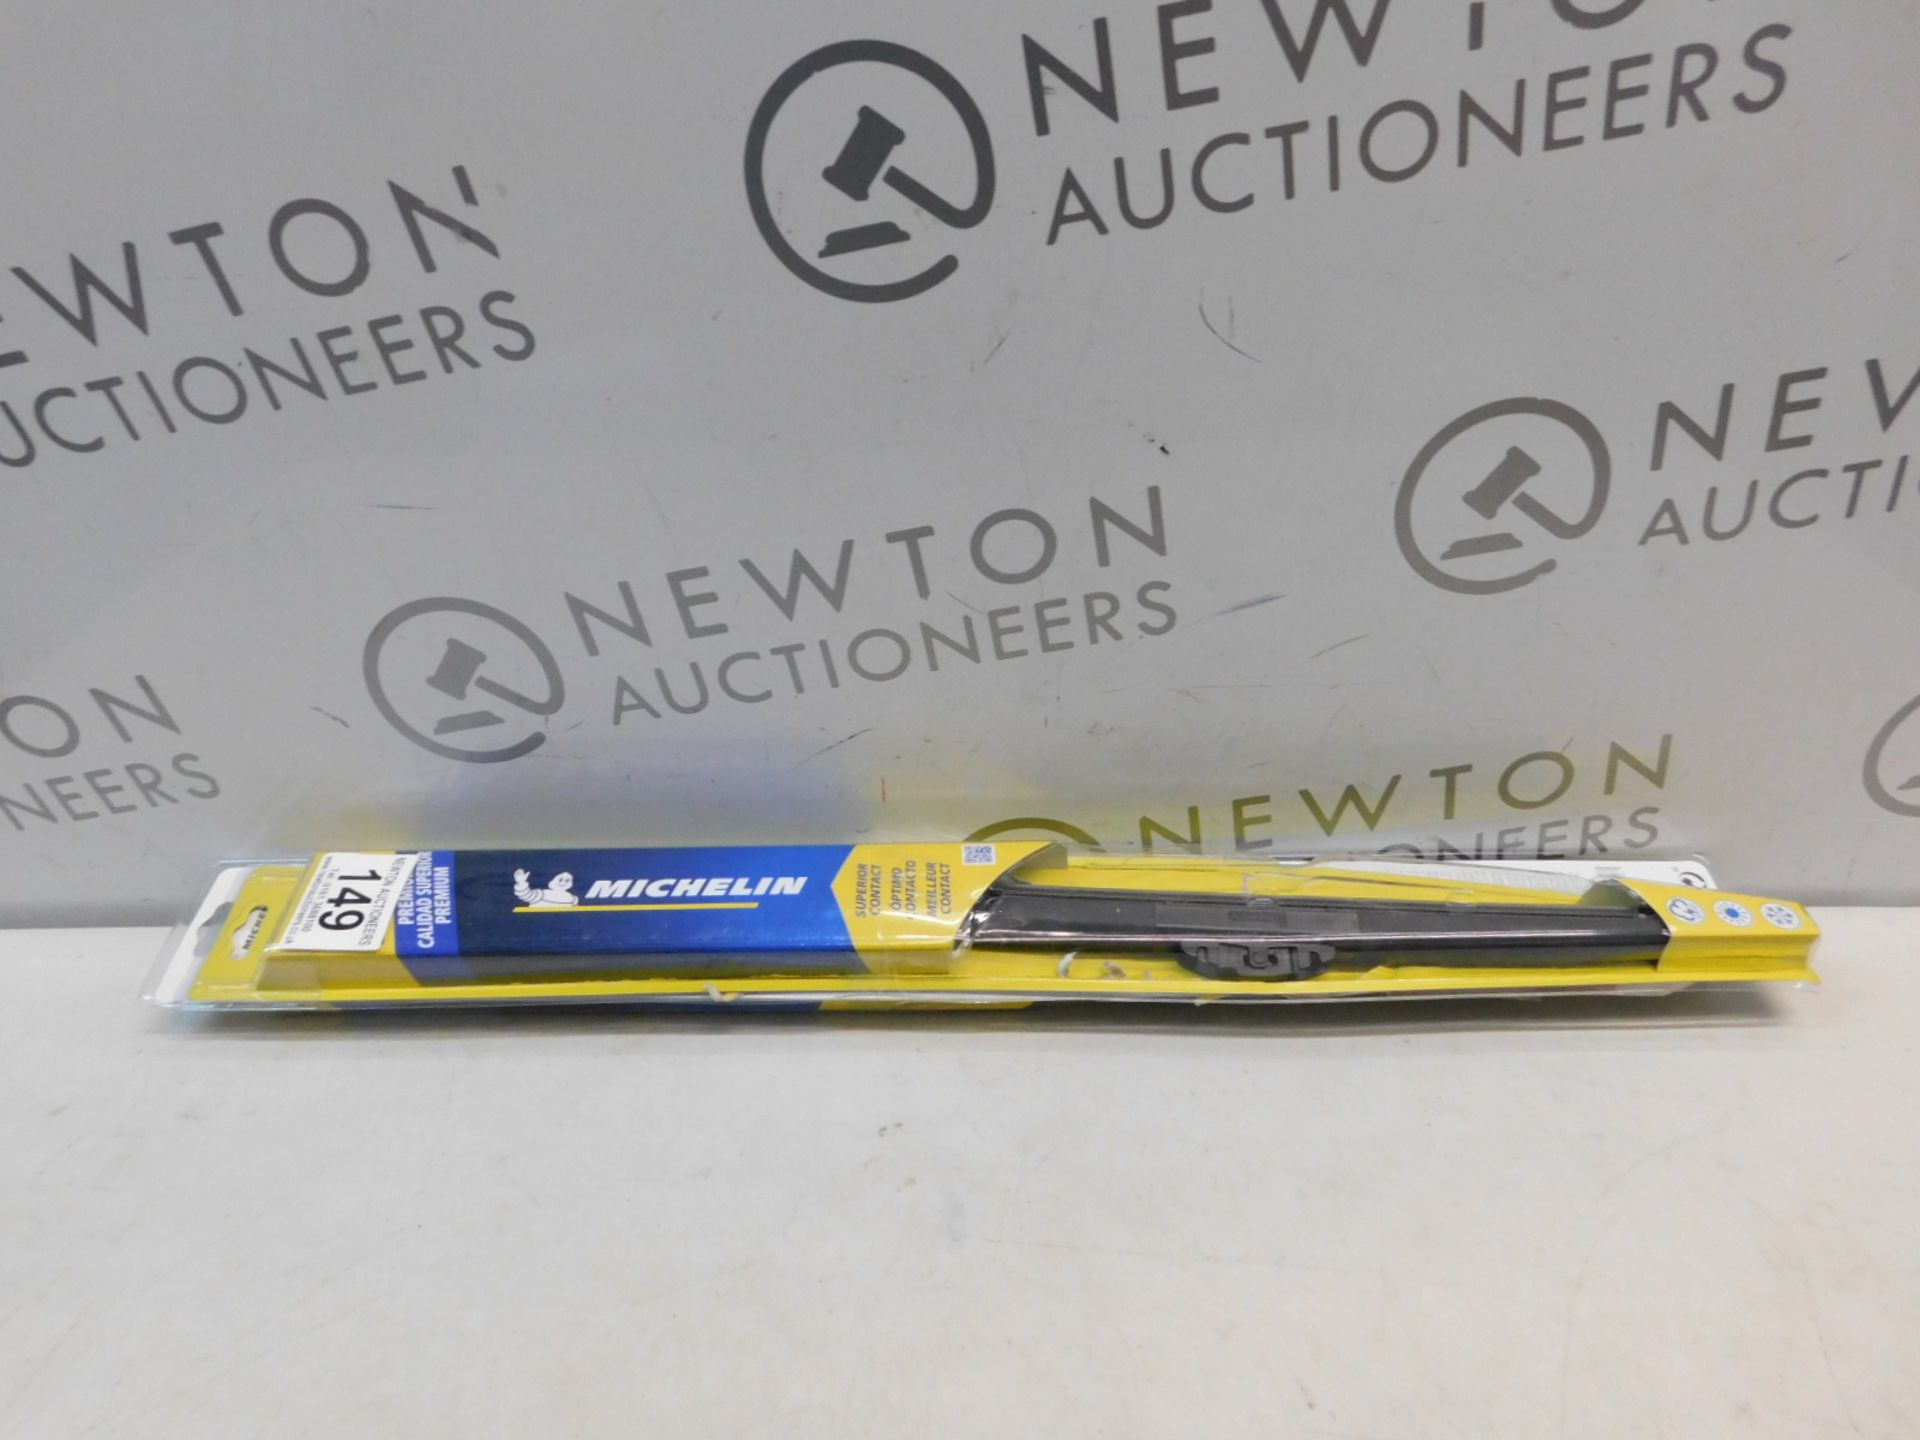 Lot 149 - 2 PACKS OF MICHELIN STEALTH WIPER BLADES IN VARIOUS SIZES RRP £39.99